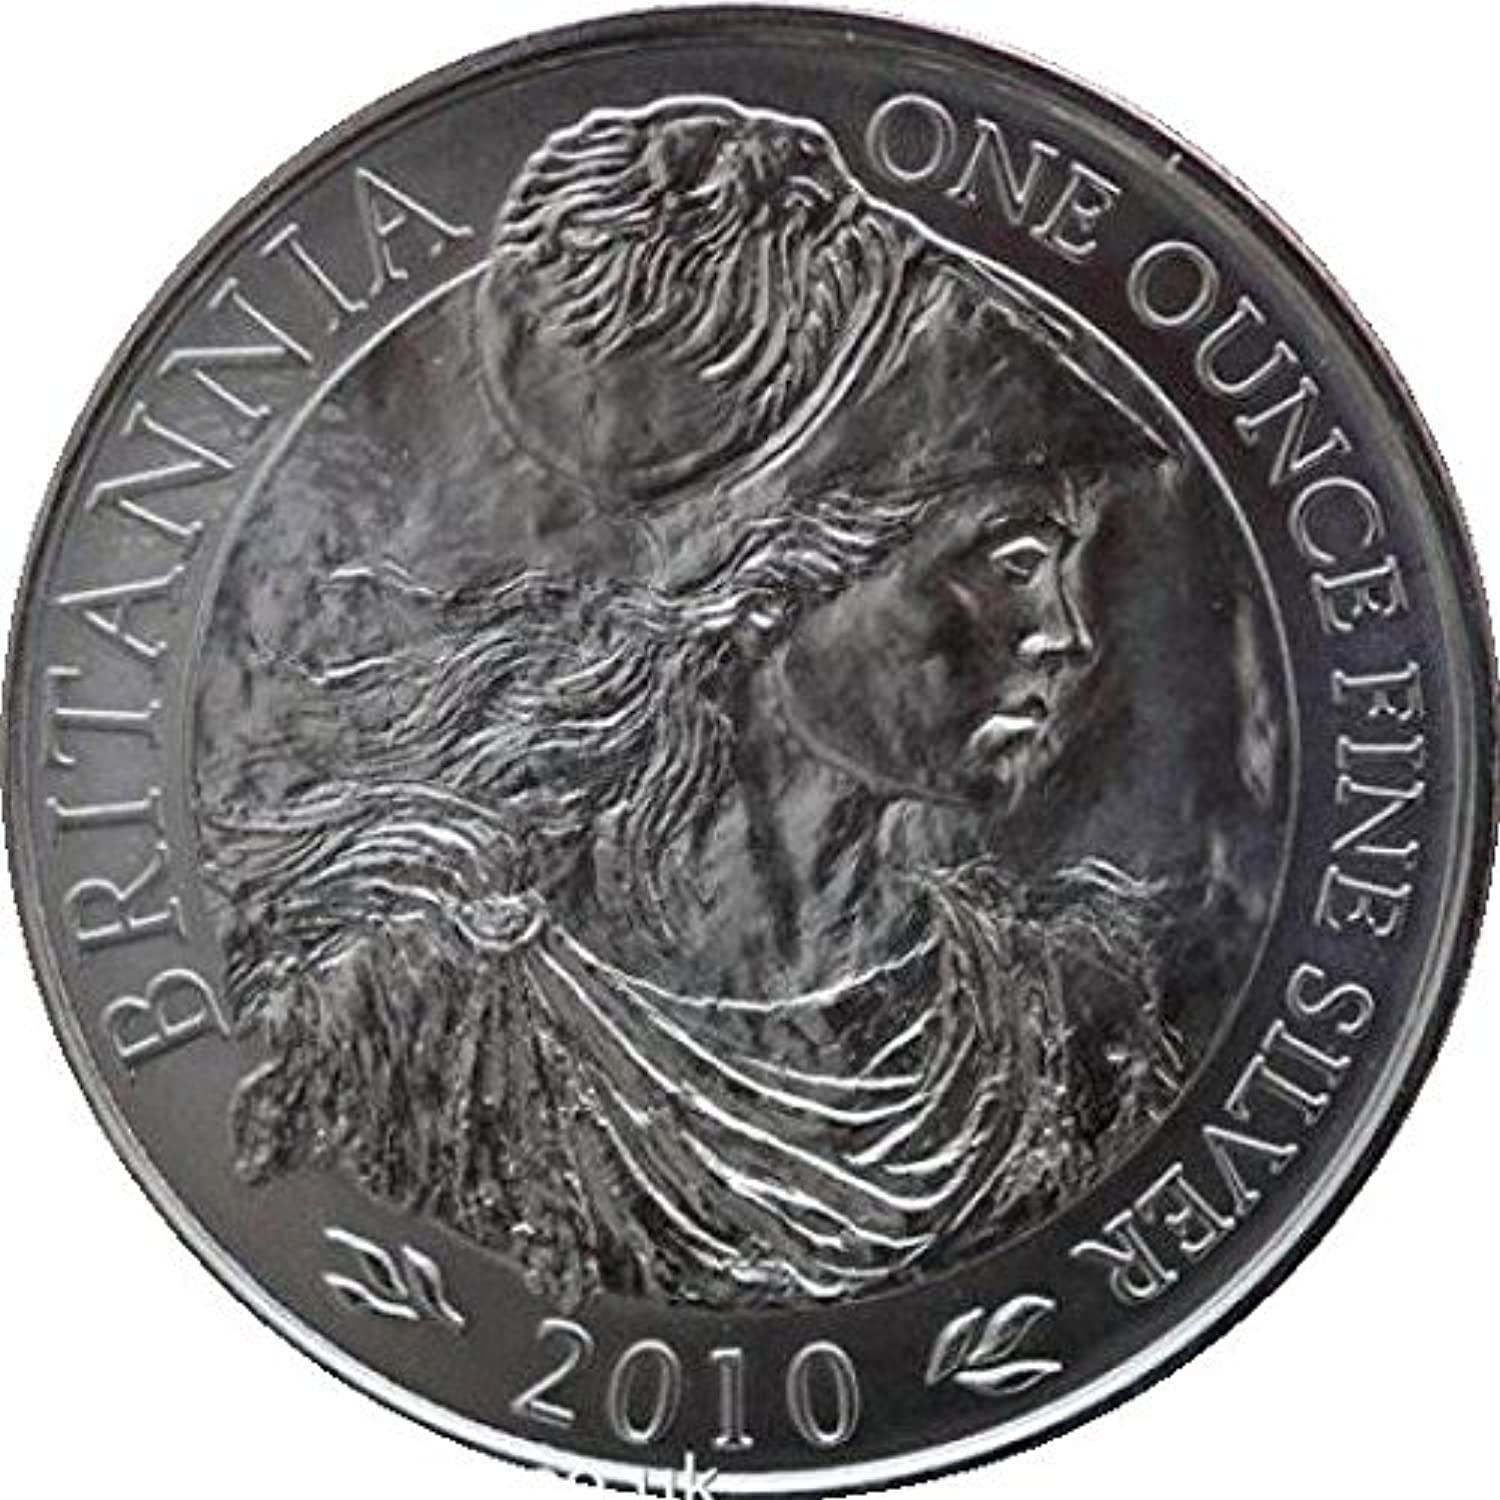 2010 Royal Mint Britannia 1oz Silver Bu Coin